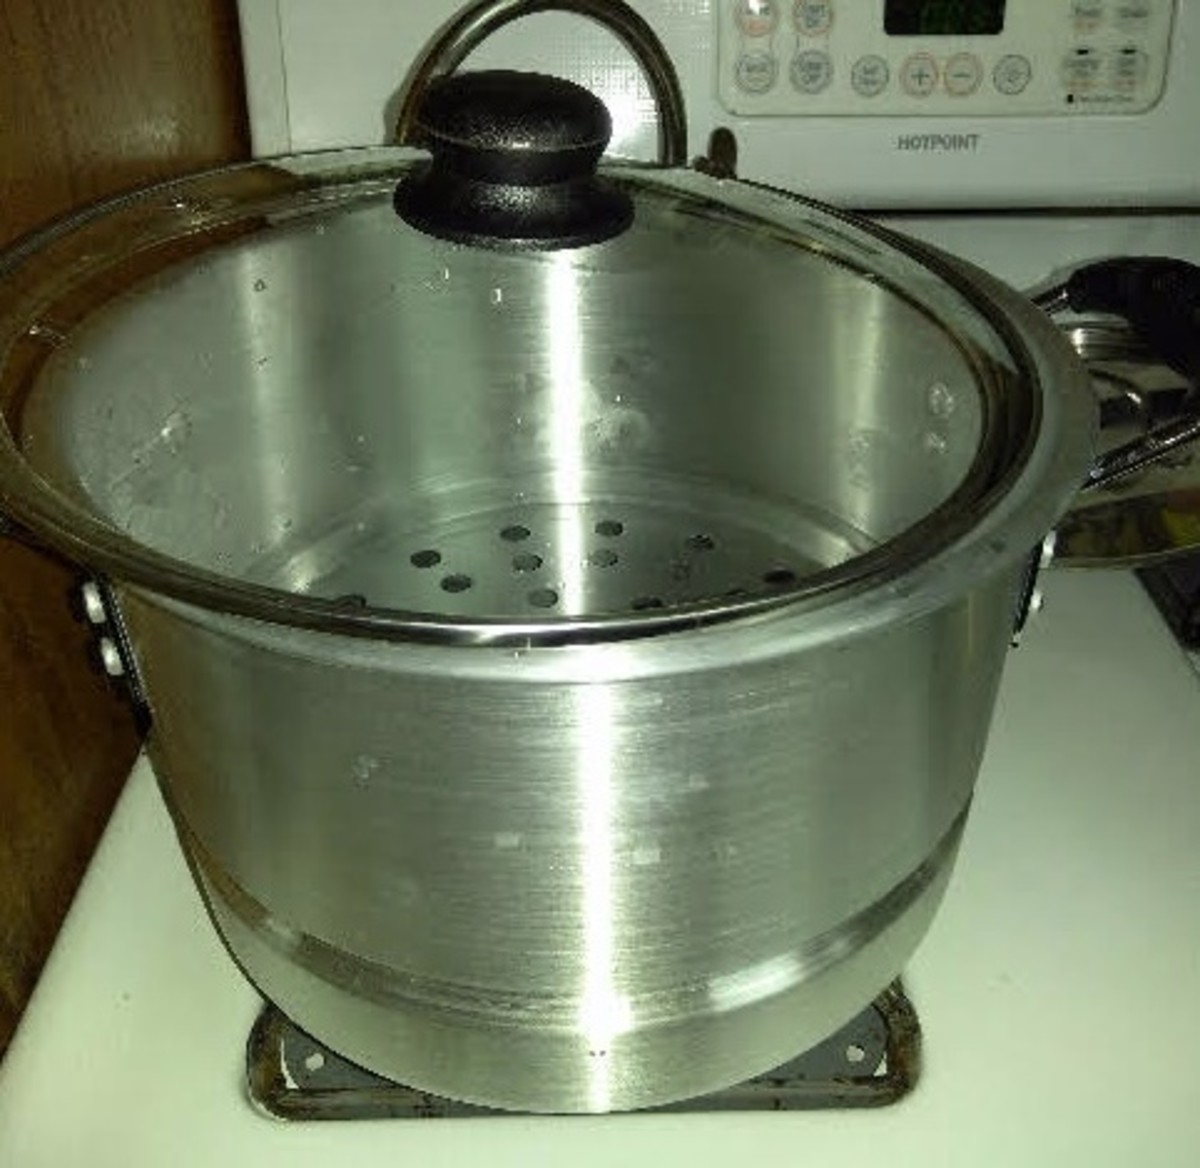 You will need a large steamer pot to cook your tamales.